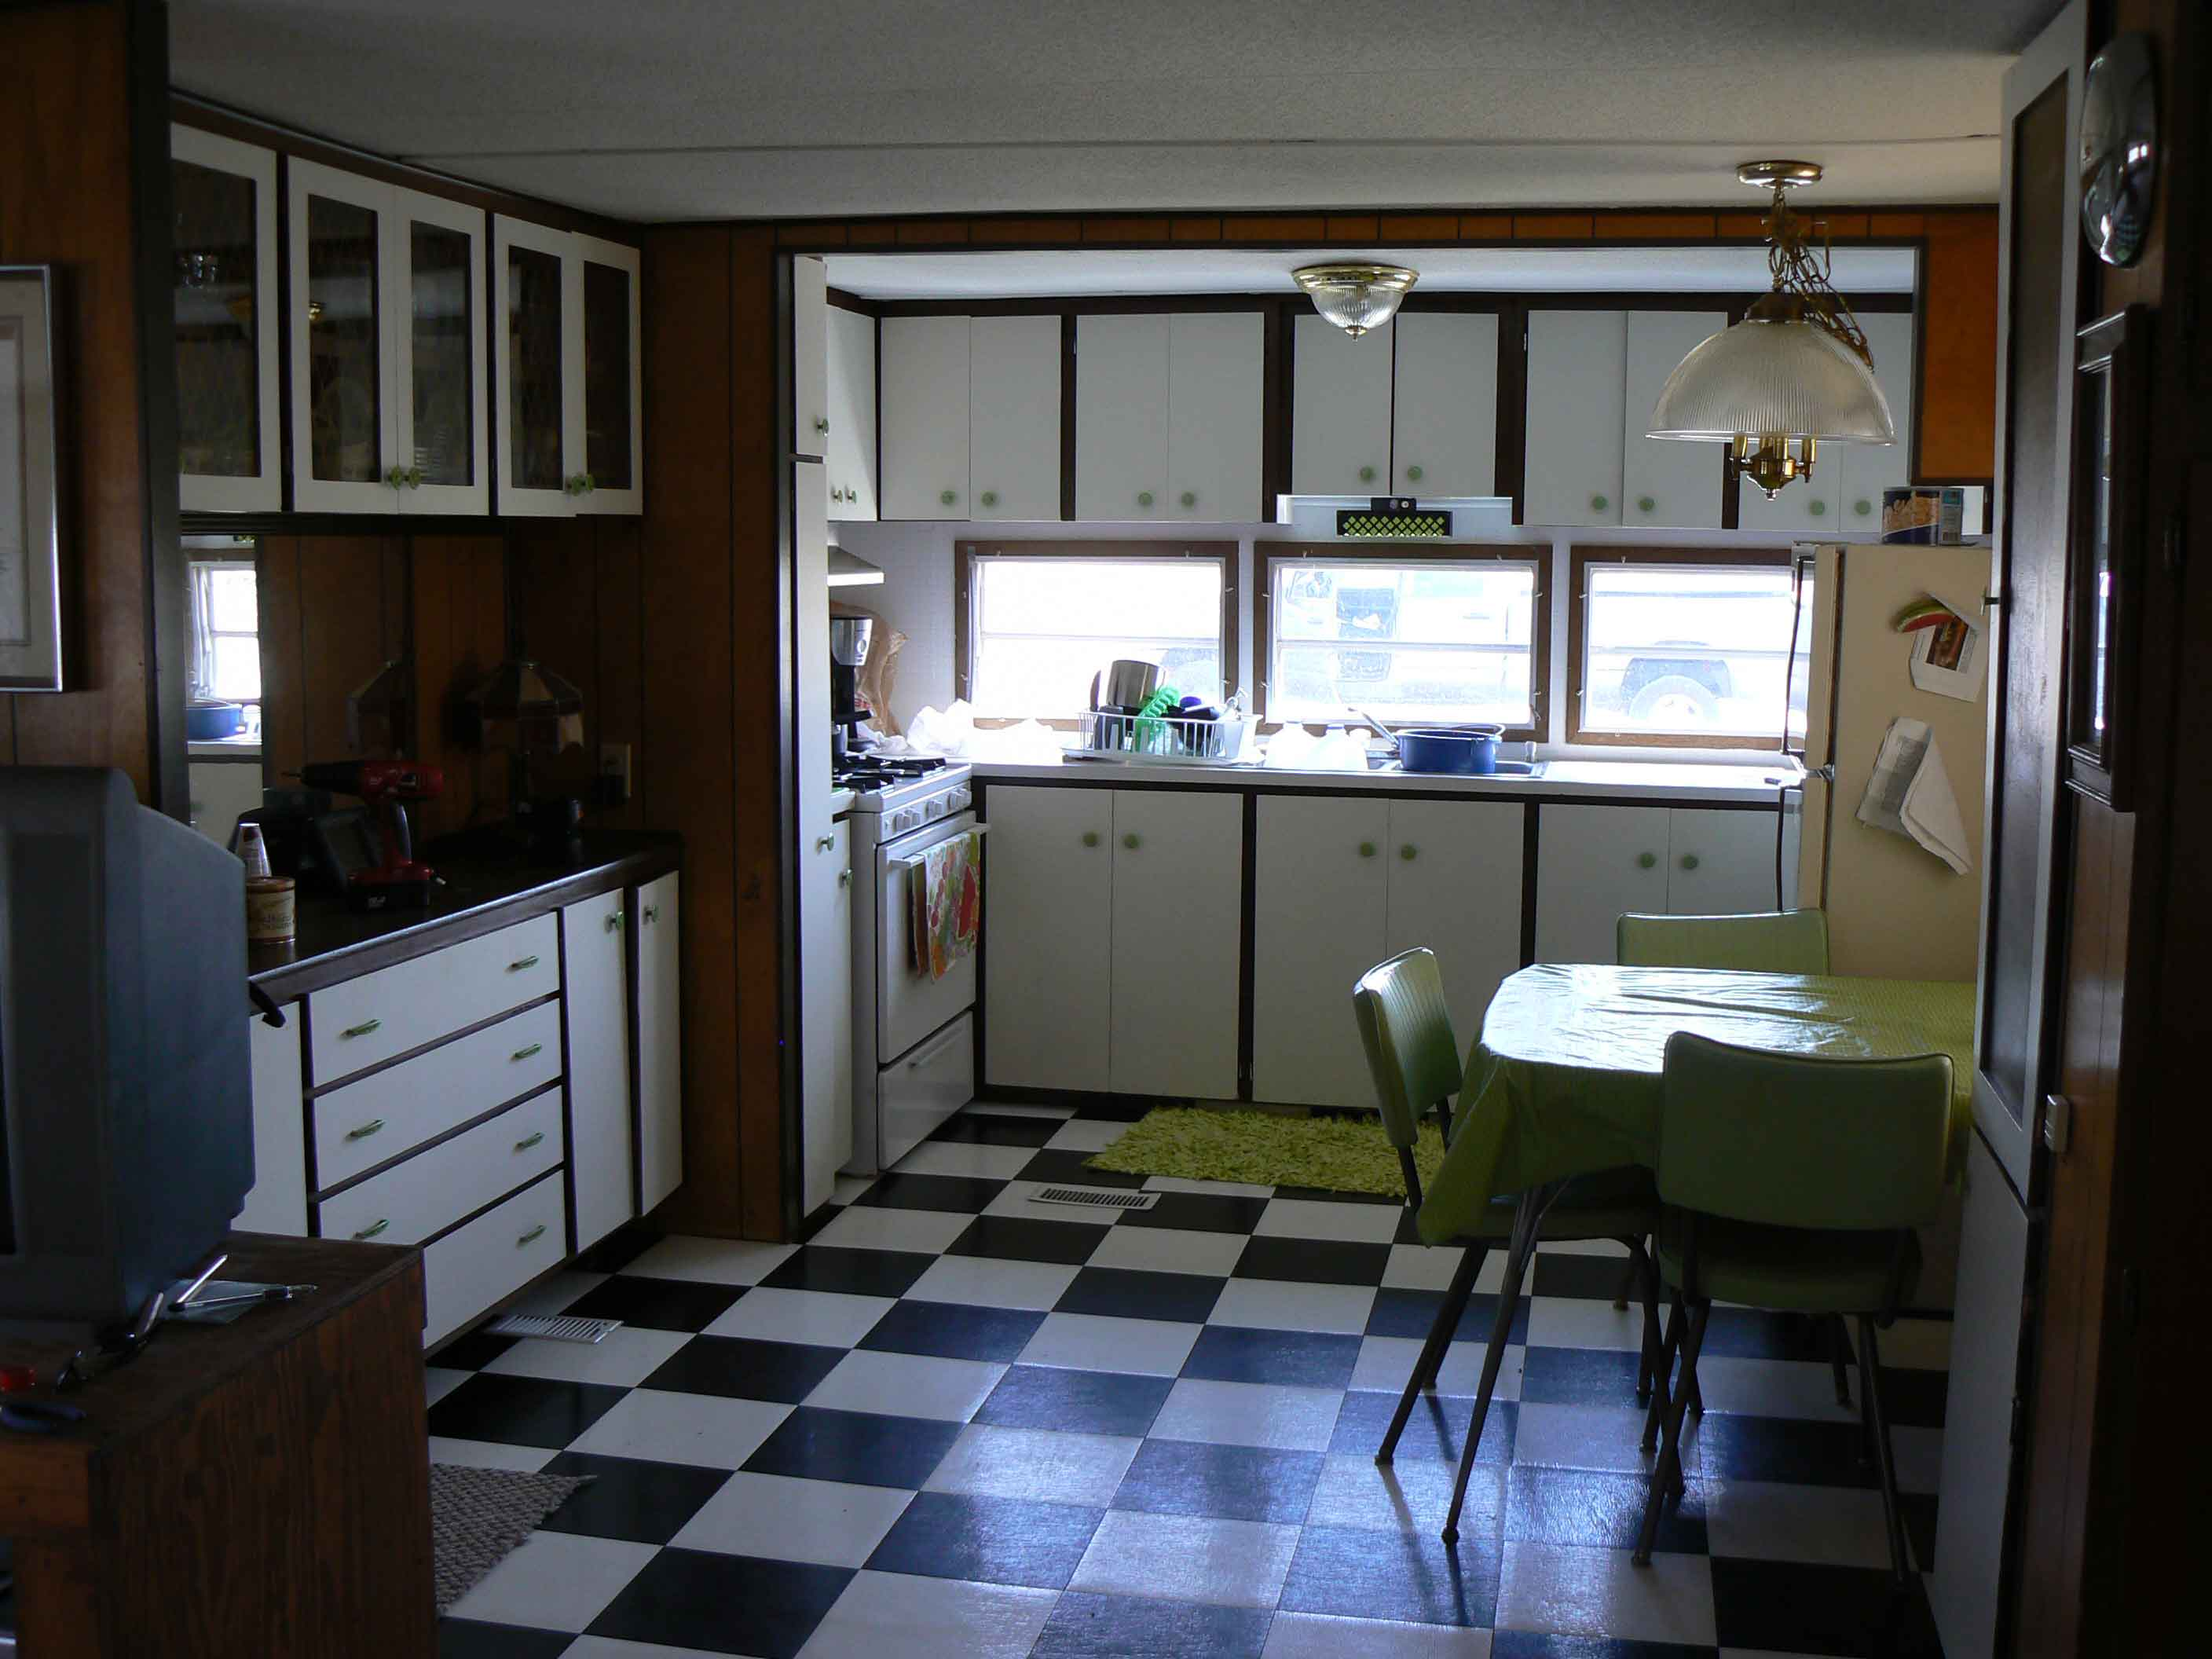 Lakwood Mobile Home Court on mobile washer and dryer, mobile home kitchens, mobile home patios, mobile home fireplace, mobile home sink, mobile home bathrooms, mobile home ovens,